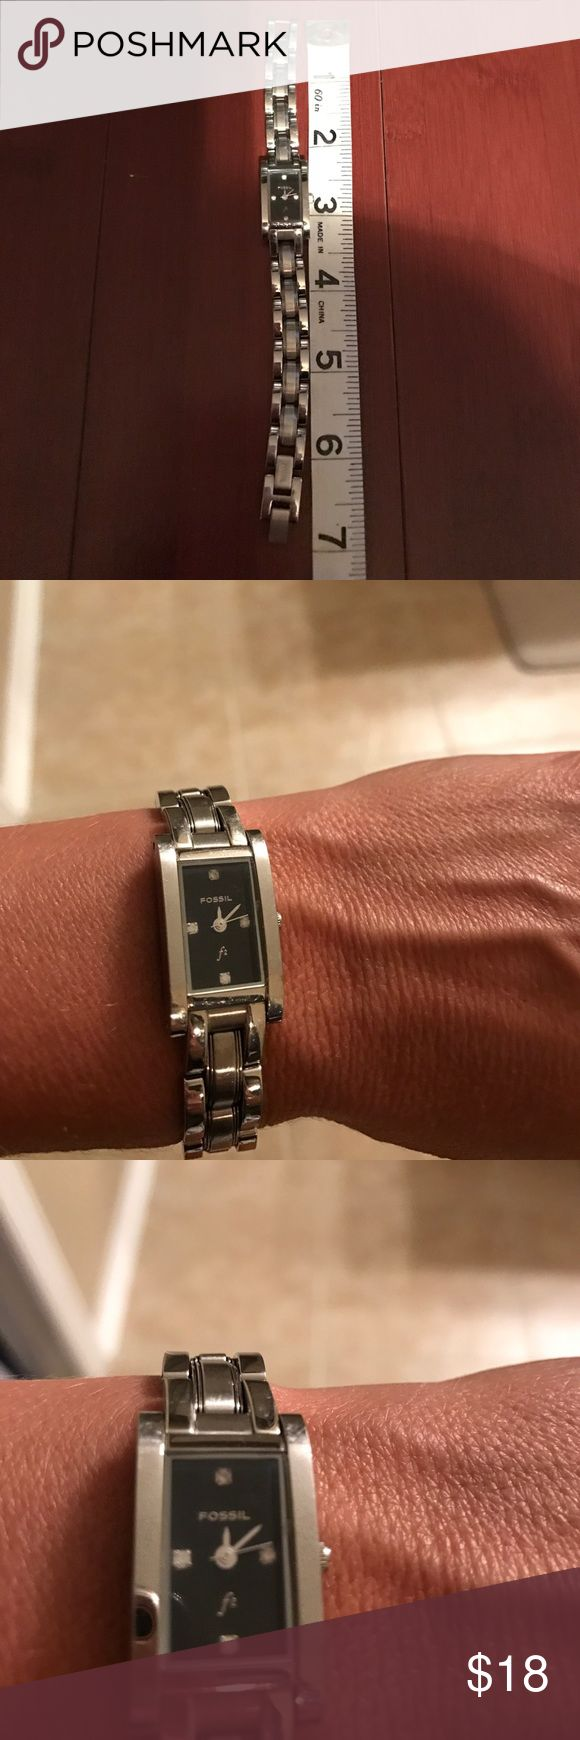 Fossil watch Fossil watch. Battery needed. Would fit wrist 8 inches or smaller. Fossil Accessories Watches